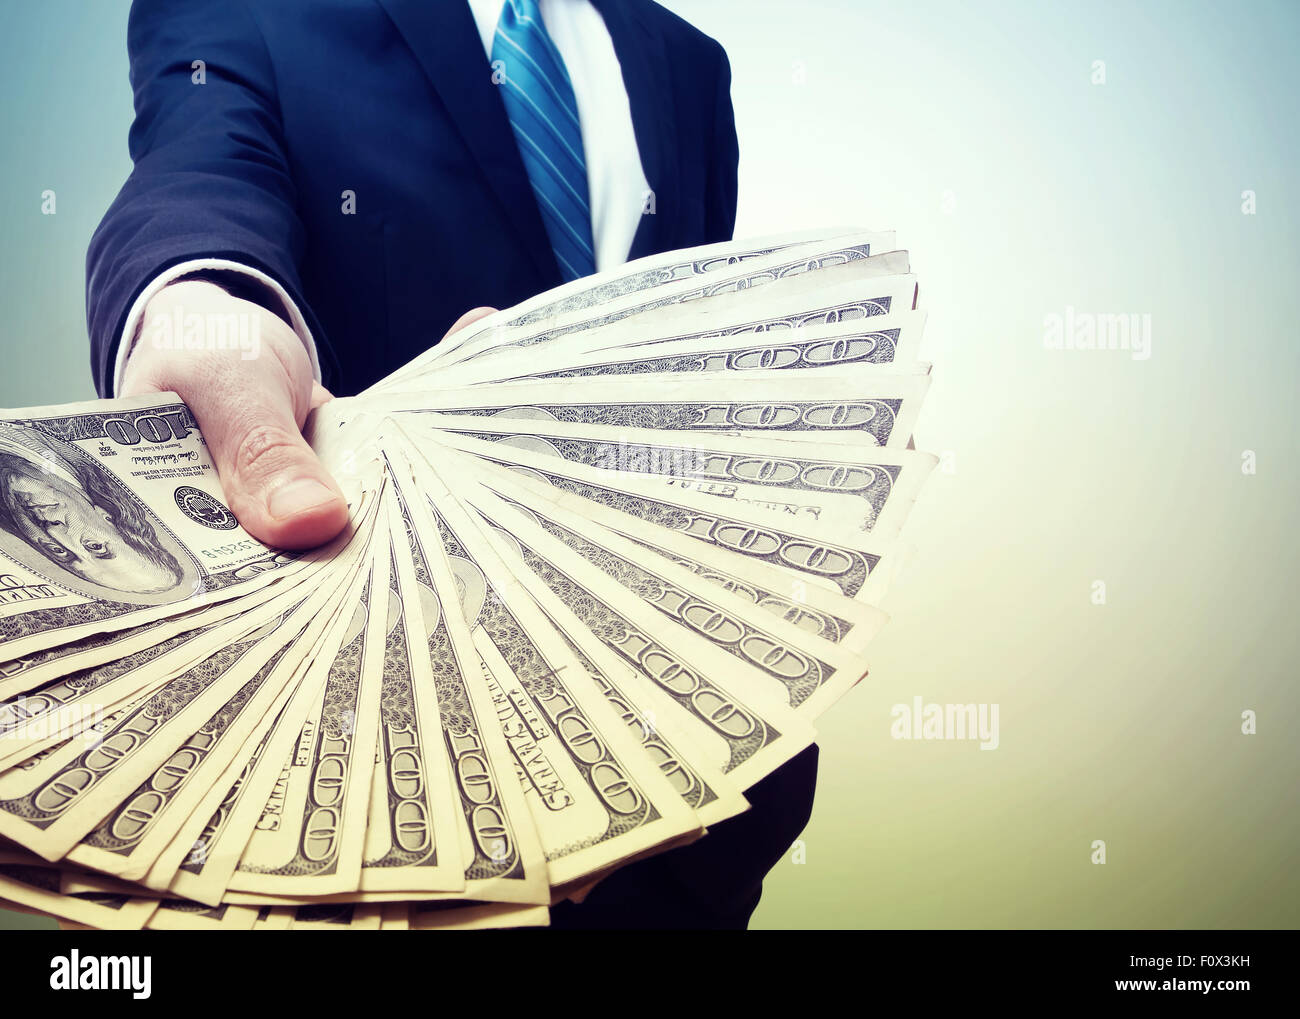 Business Man Displaying a Spread of Cash in Vintage Light - Stock Image